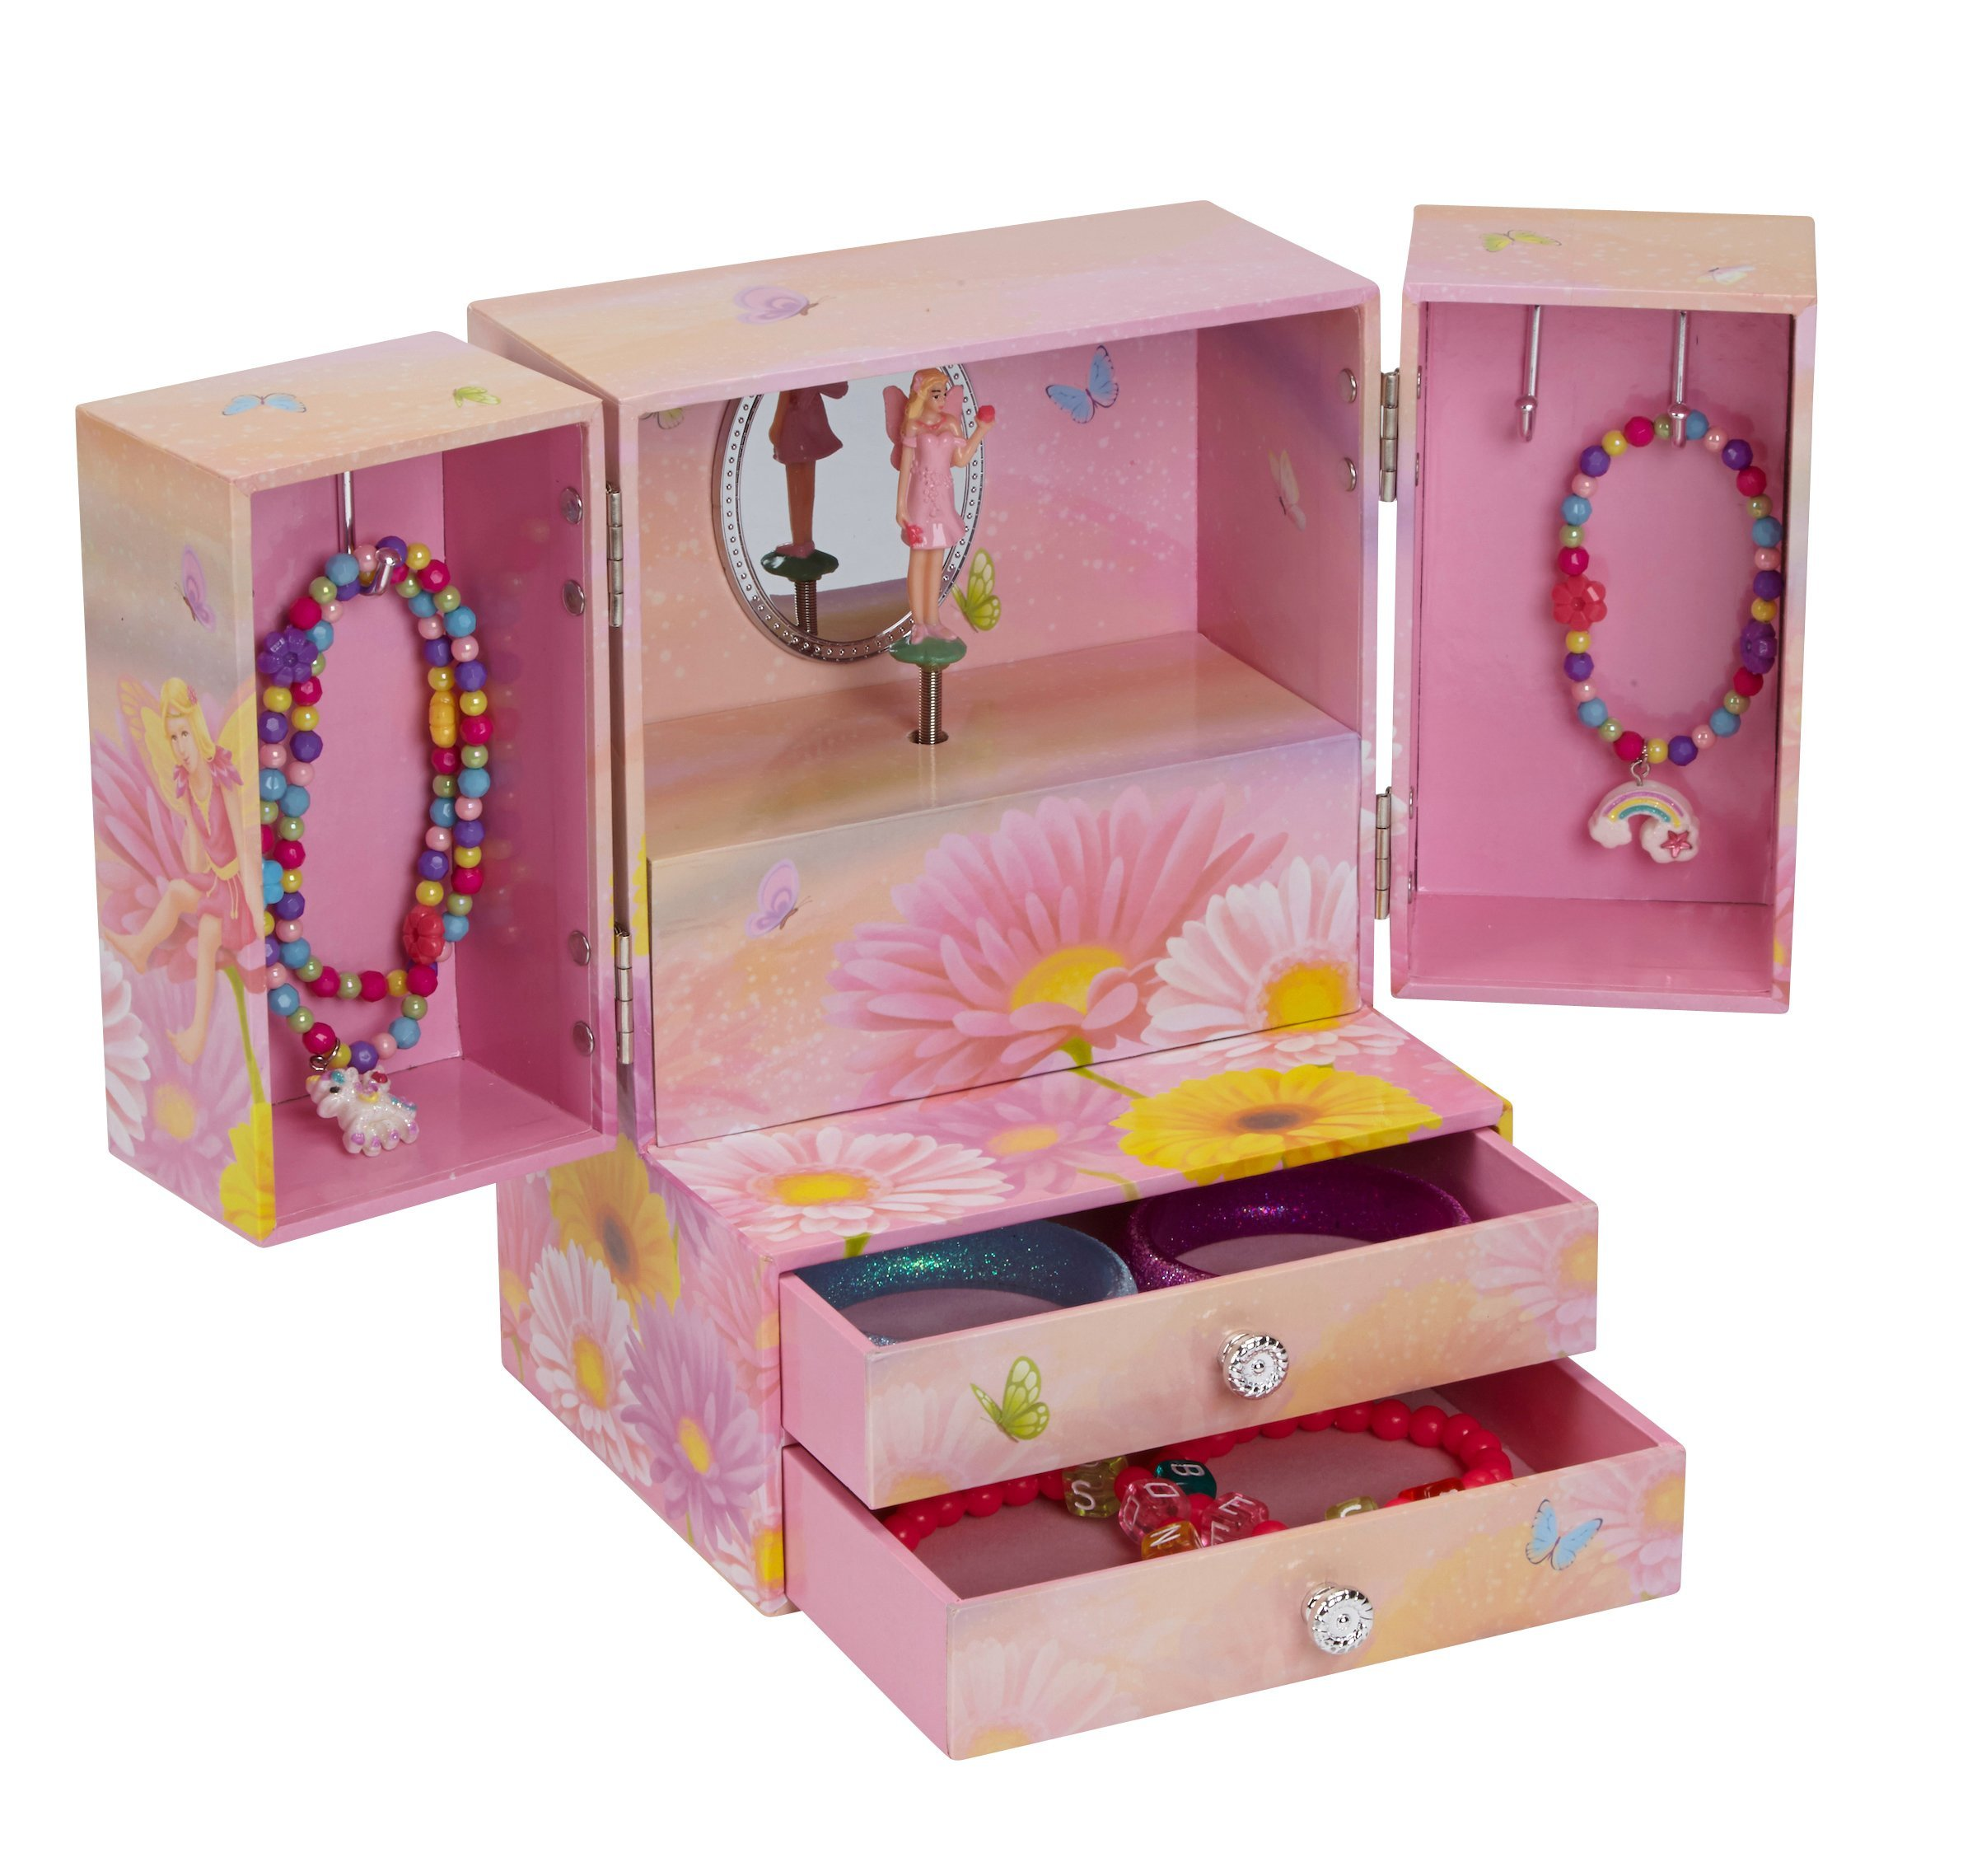 JewelKeeper Musical Jewelry Armoire with 2 Pullout Drawers and Twirling Fairy, You Are My Sunshine Tune